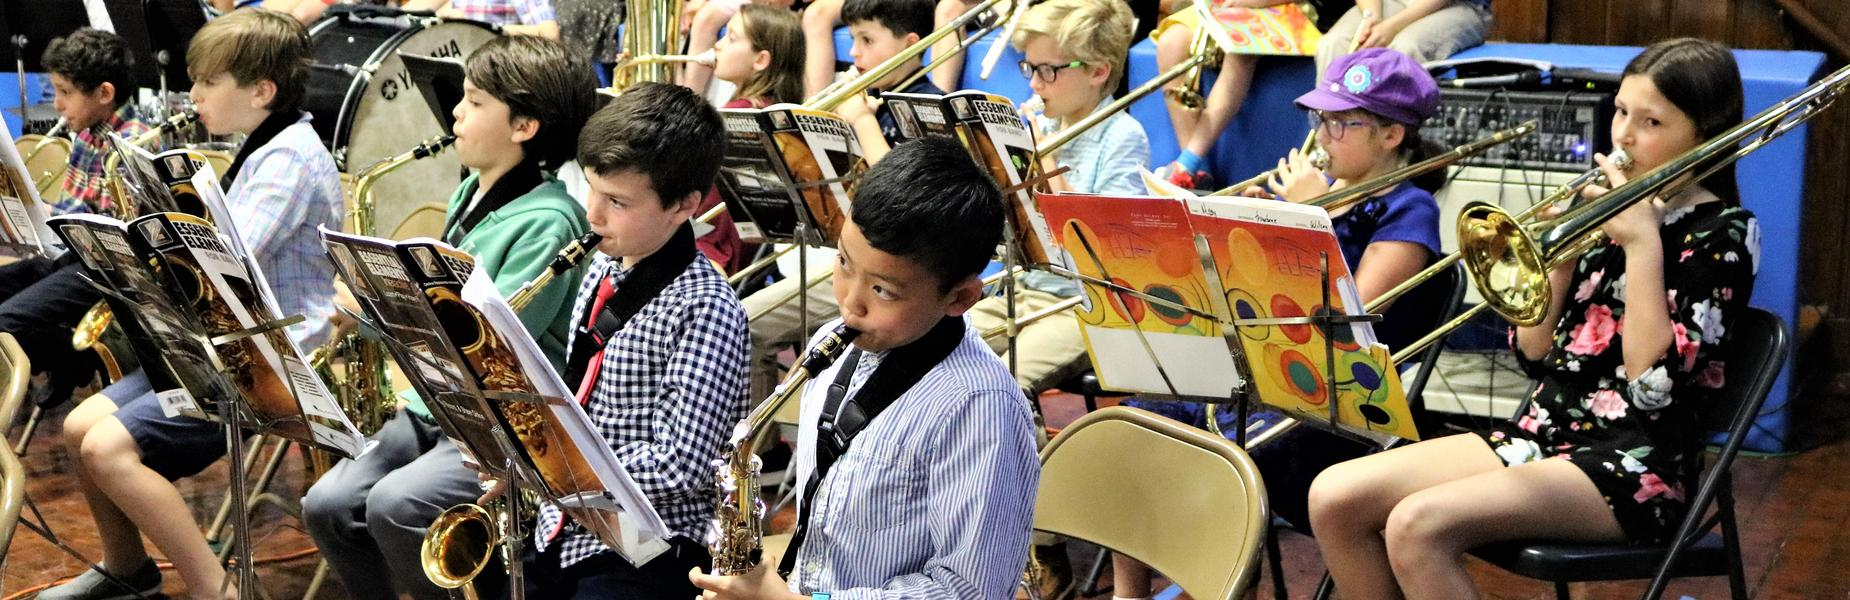 Photo of 4th graders performing in Wilson School Spring Band Concert on May 7, 2019.